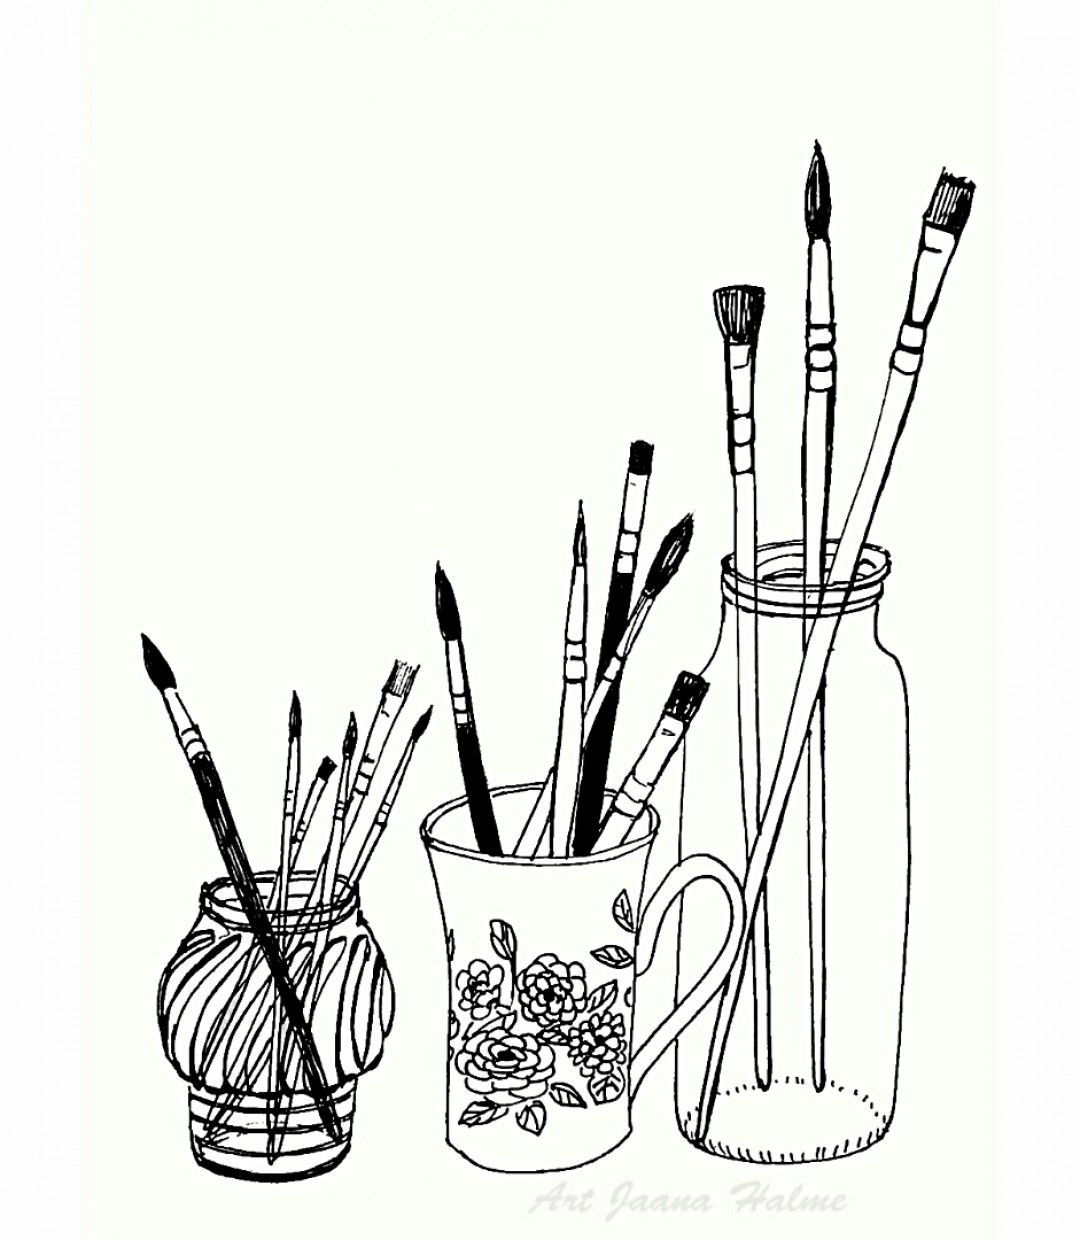 Learn Basic Stylized Line Drawing From One Of Today S Most Sought After Artists In This Four Part Course Lisa Covers The Doodle Art Art Inspiration Line Art